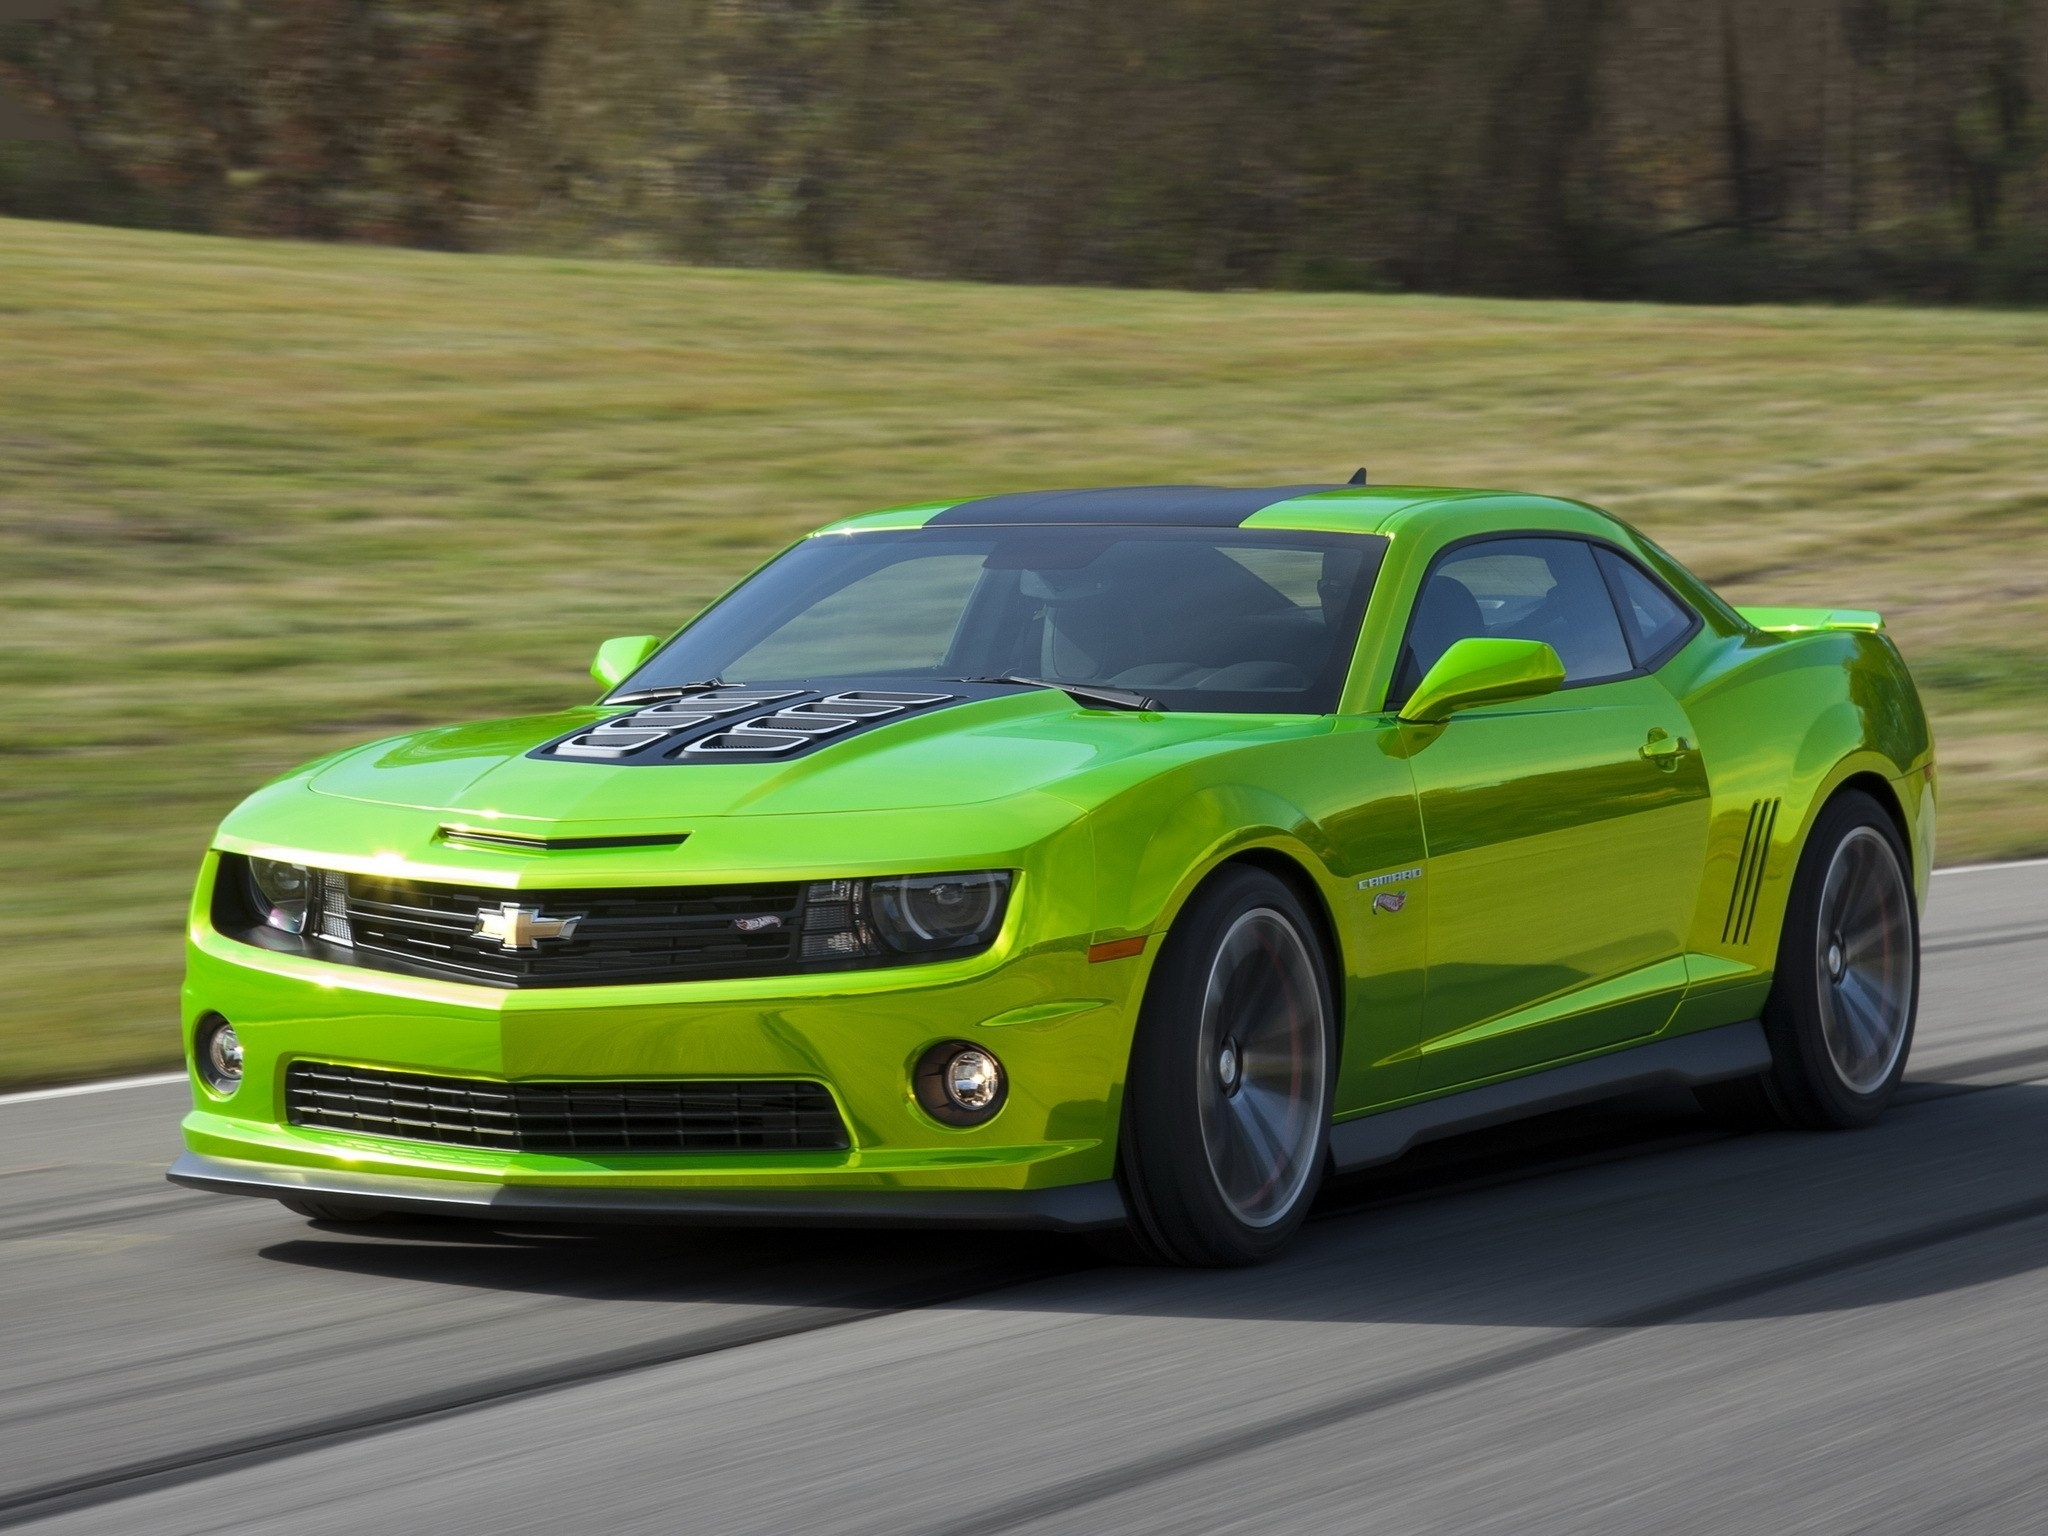 51595 download wallpaper Cars, Chevrolet Camaro, Auto, Car, Machine, Speed screensavers and pictures for free